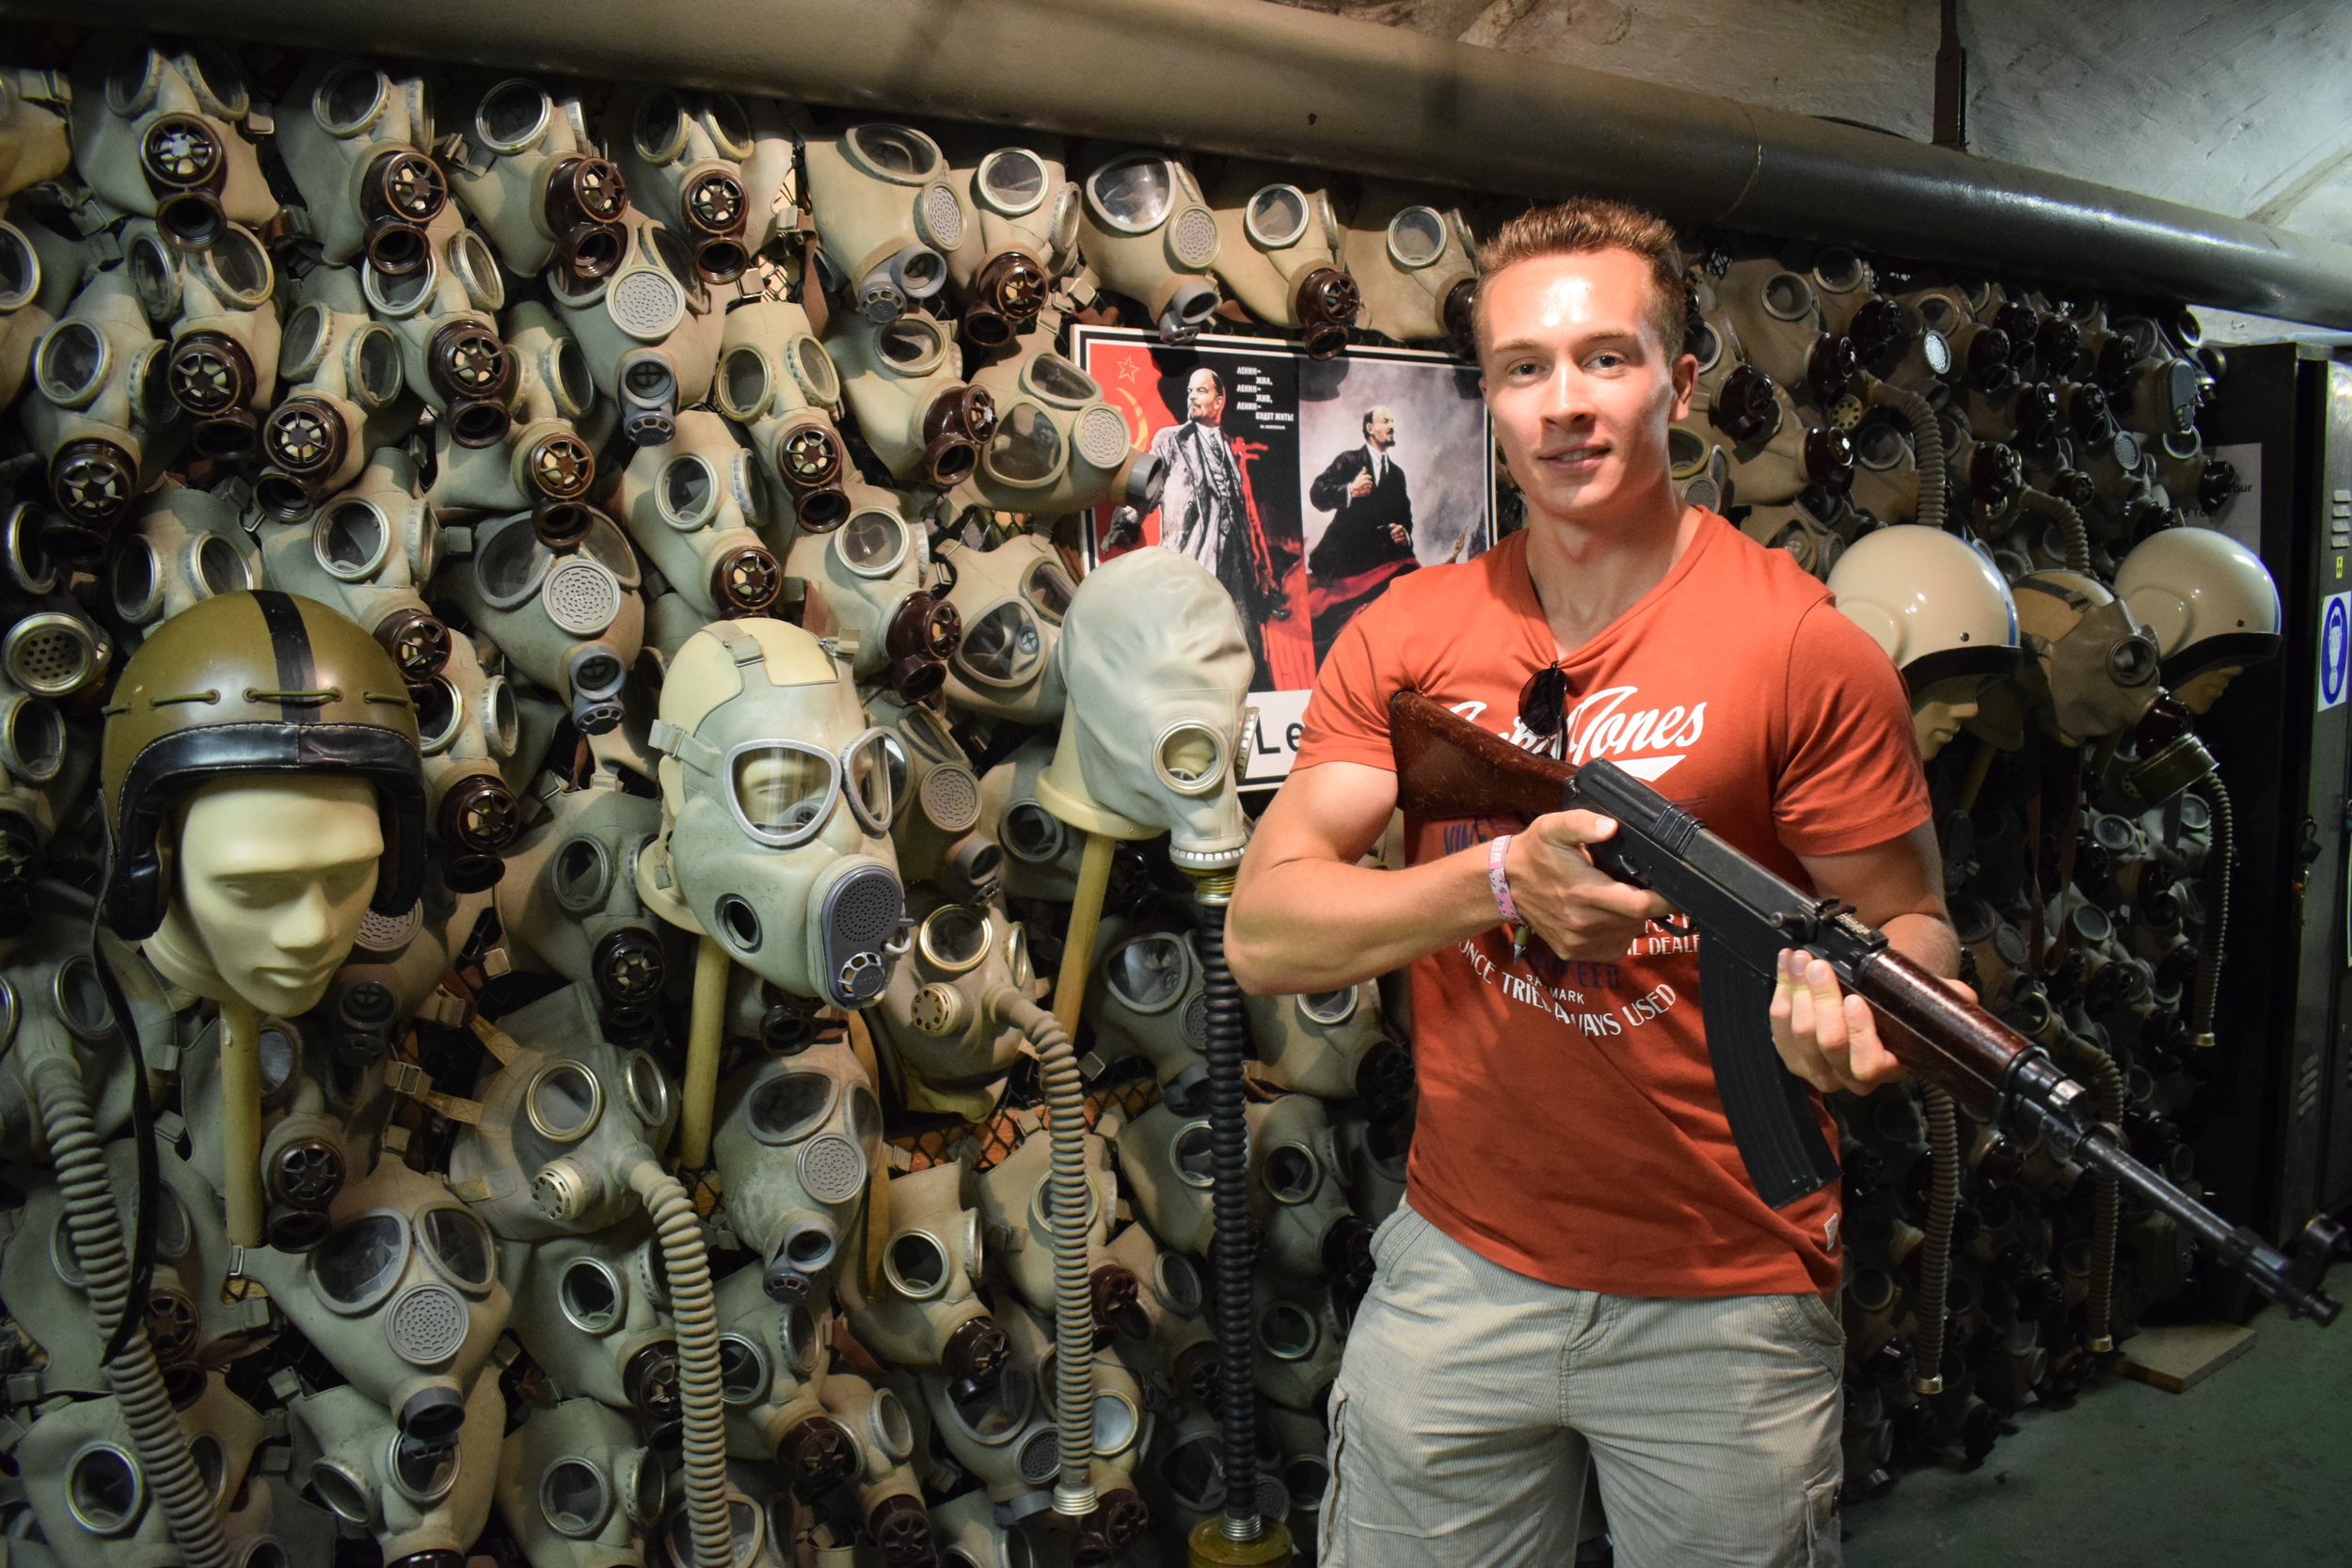 Guns and gas masks - just a handful of the memorabilia on display at Prague's nuclear bunker.